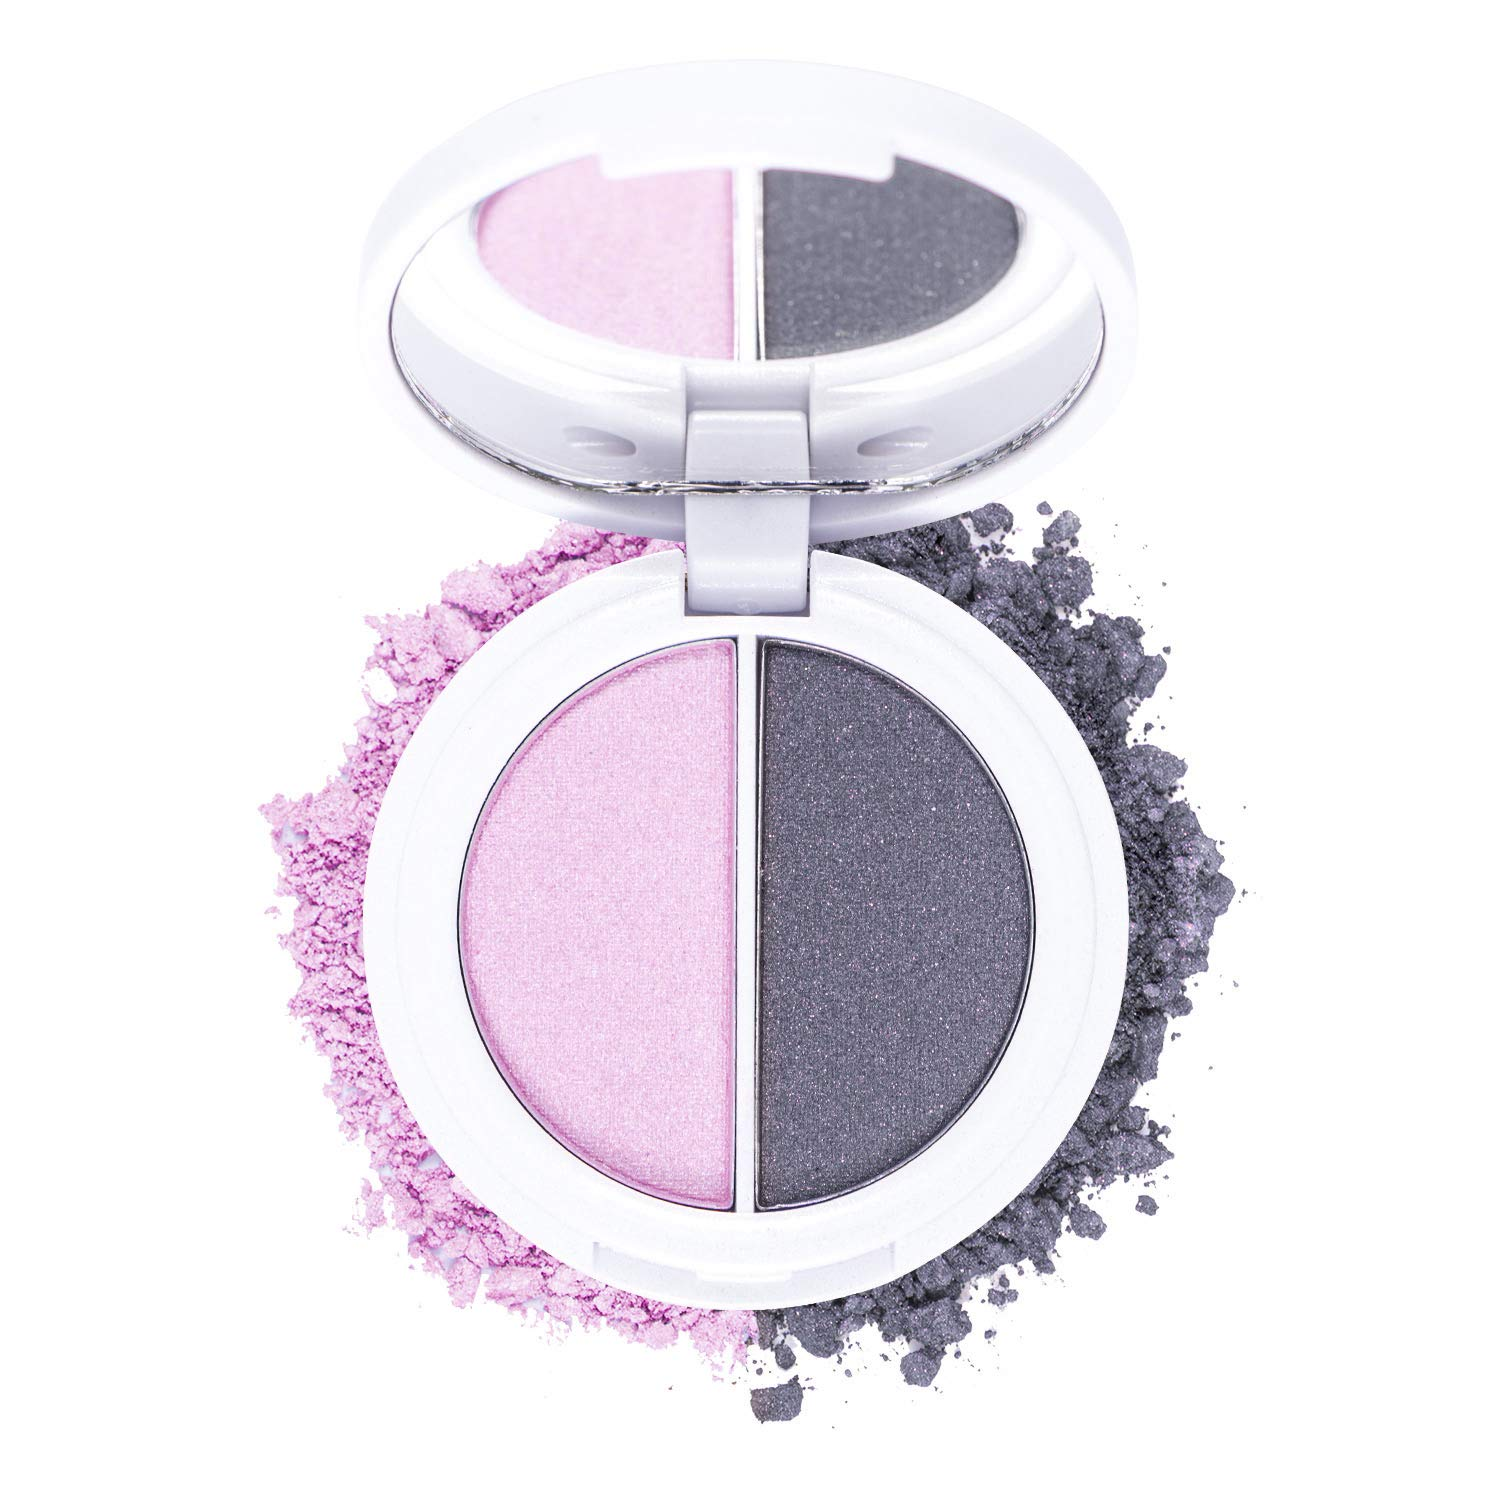 Omorose Cosmetics Eyeshadow Duo Womens Makeup Hypnotic Eyes Shimmer Pressed 2 Color Rich Bright Neutral Metallic Silky Smudge Proof Pigmented Pigment Blendable Eye Beauty Girl Eyeshadow, Come To Bed Pink & Gray